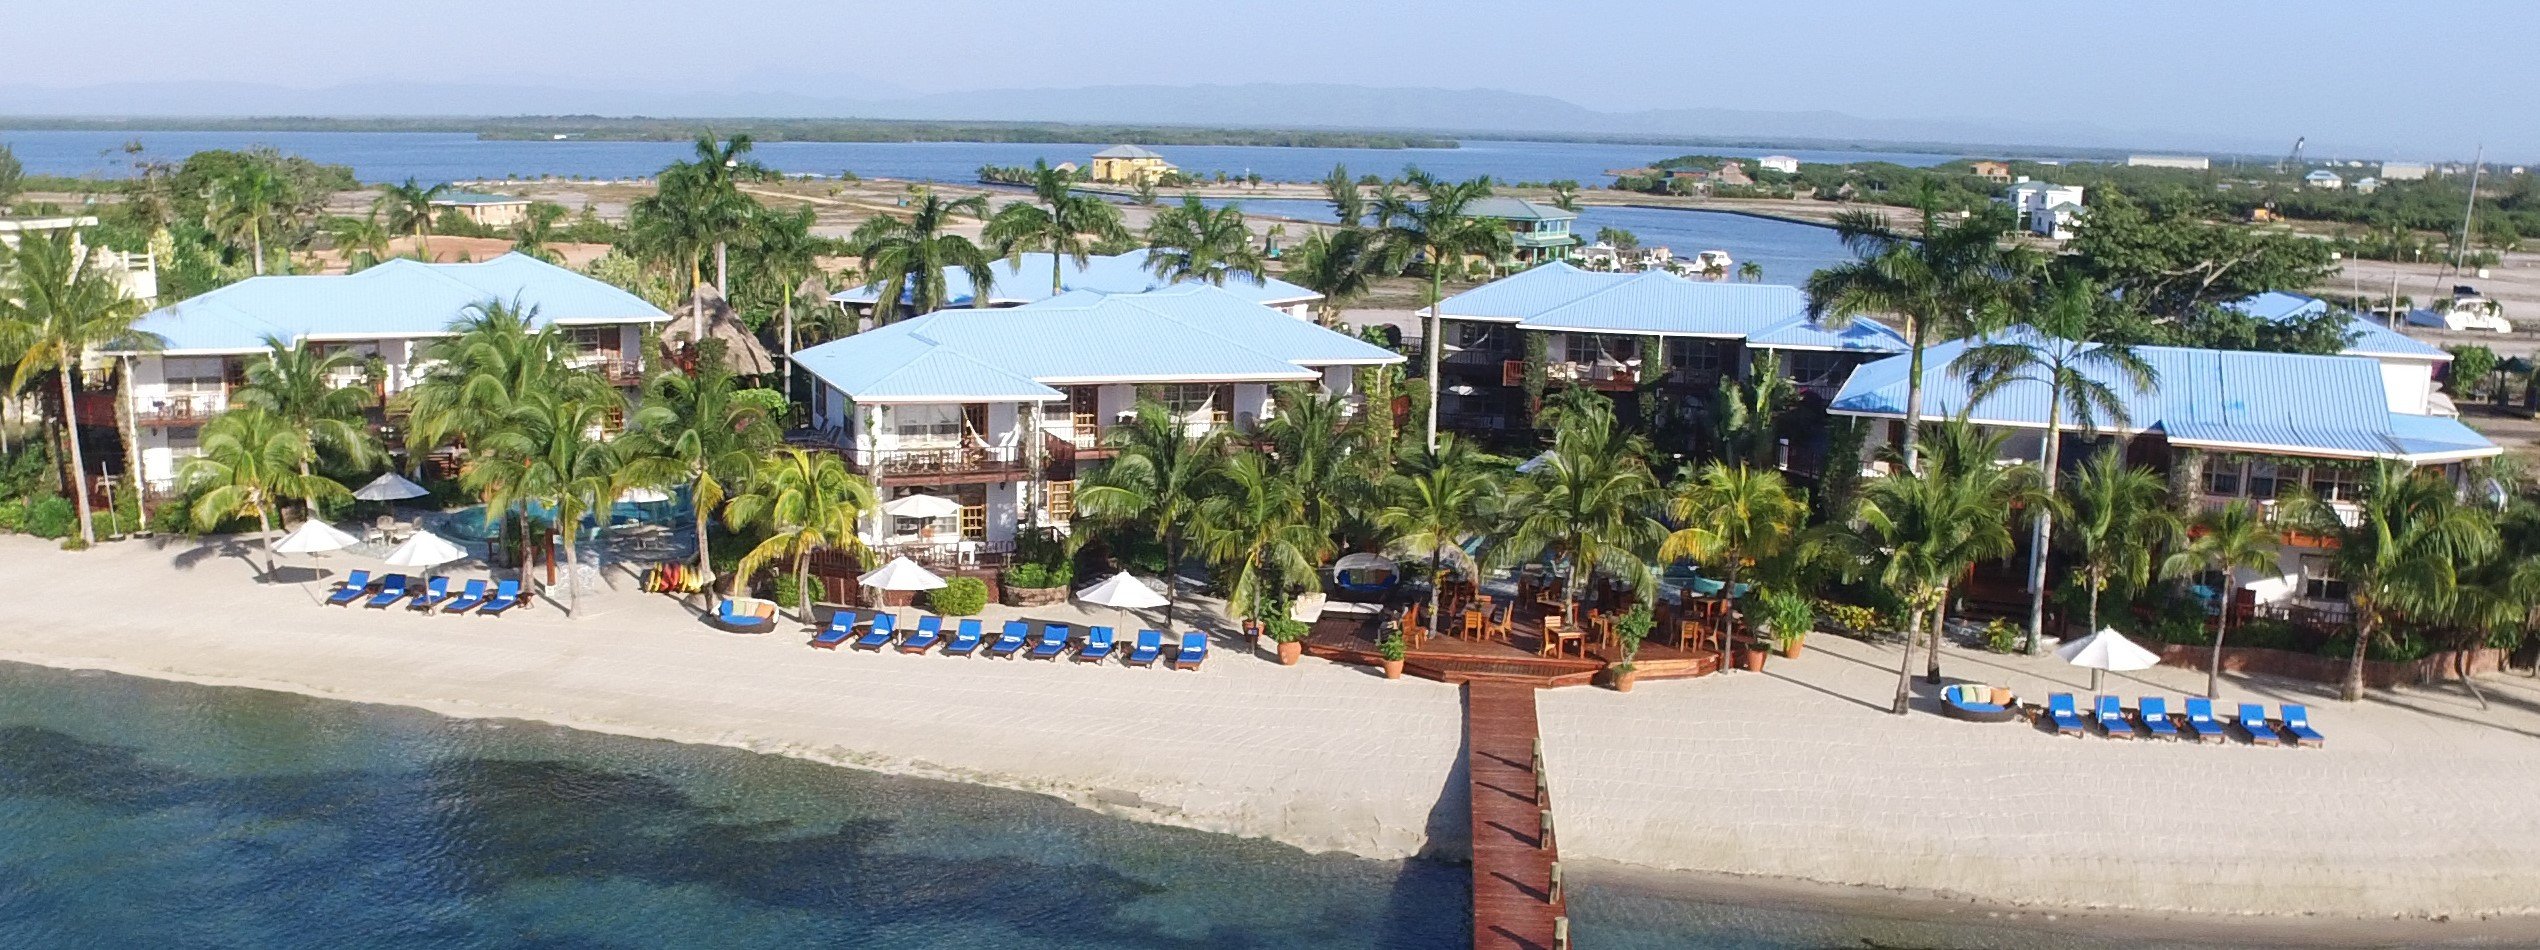 placencia belize resort